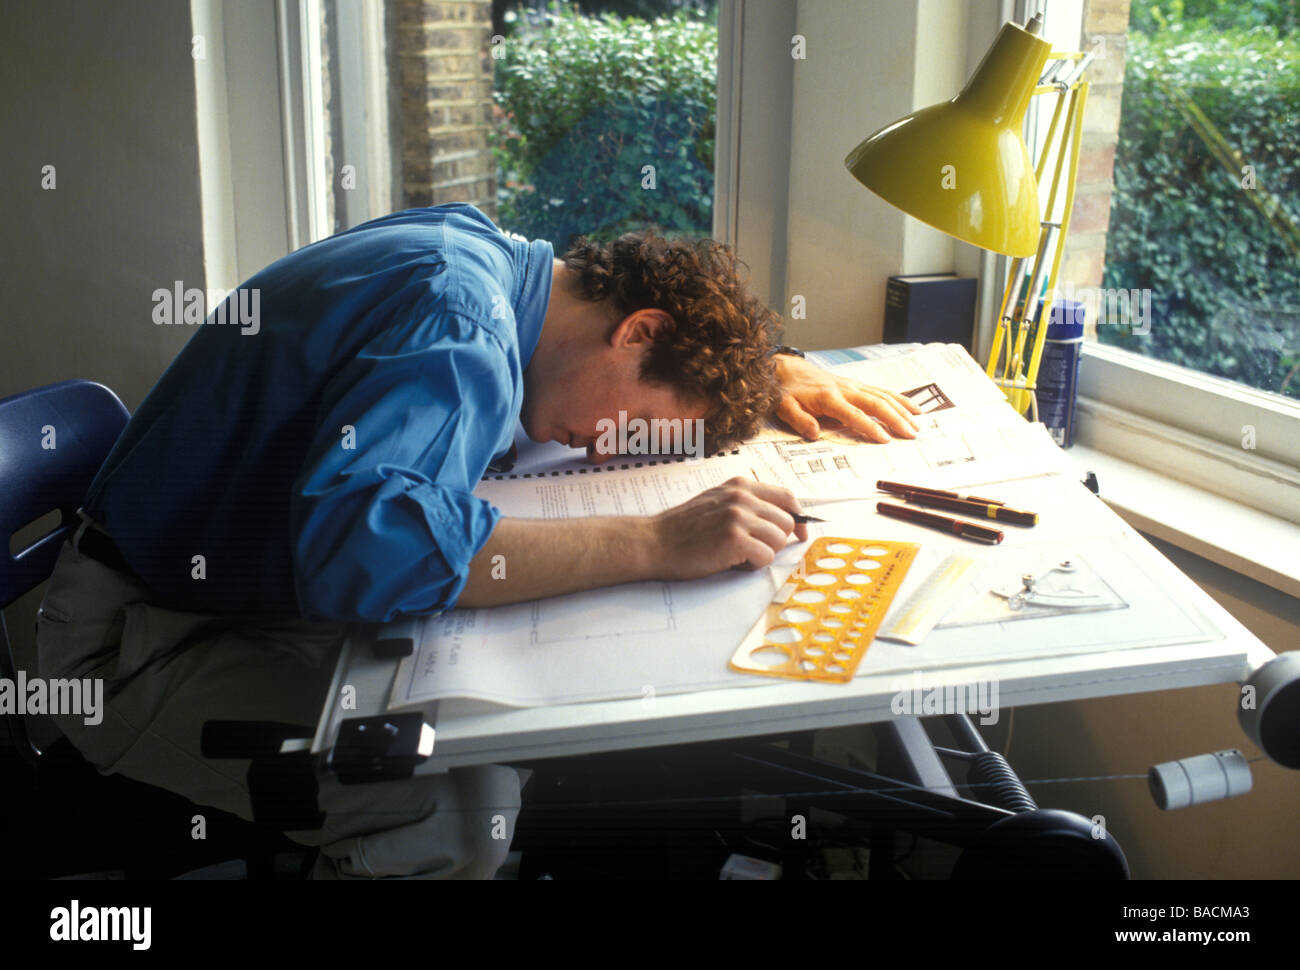 Captivating Male Architect Or Designer Asleep Over His Work